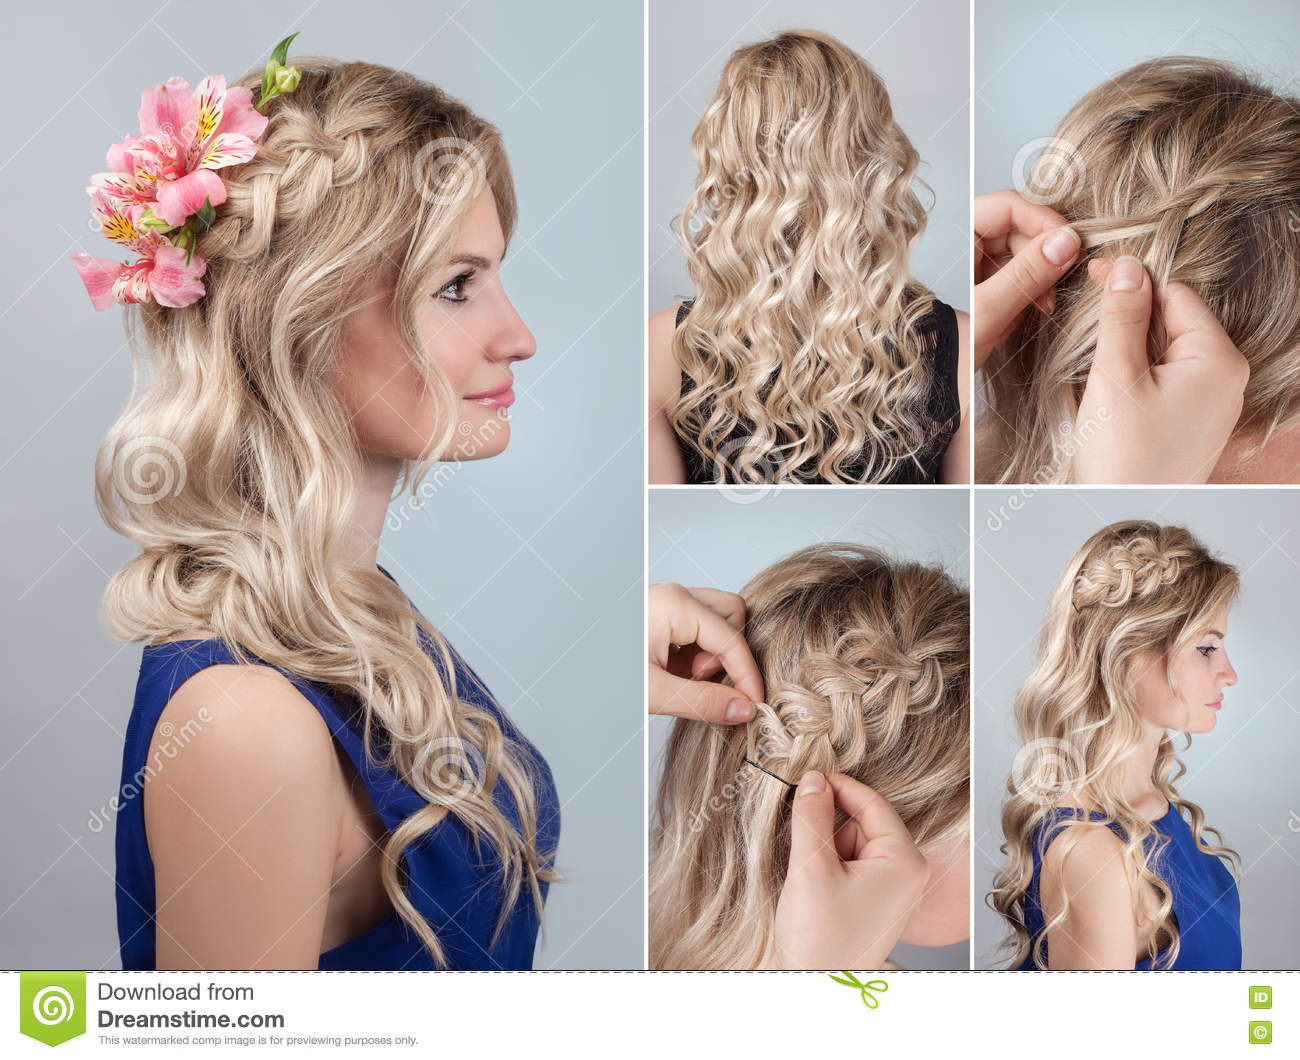 Hairstyle Braid With Fresh Flowers Tutorial Stock Photo Image Of